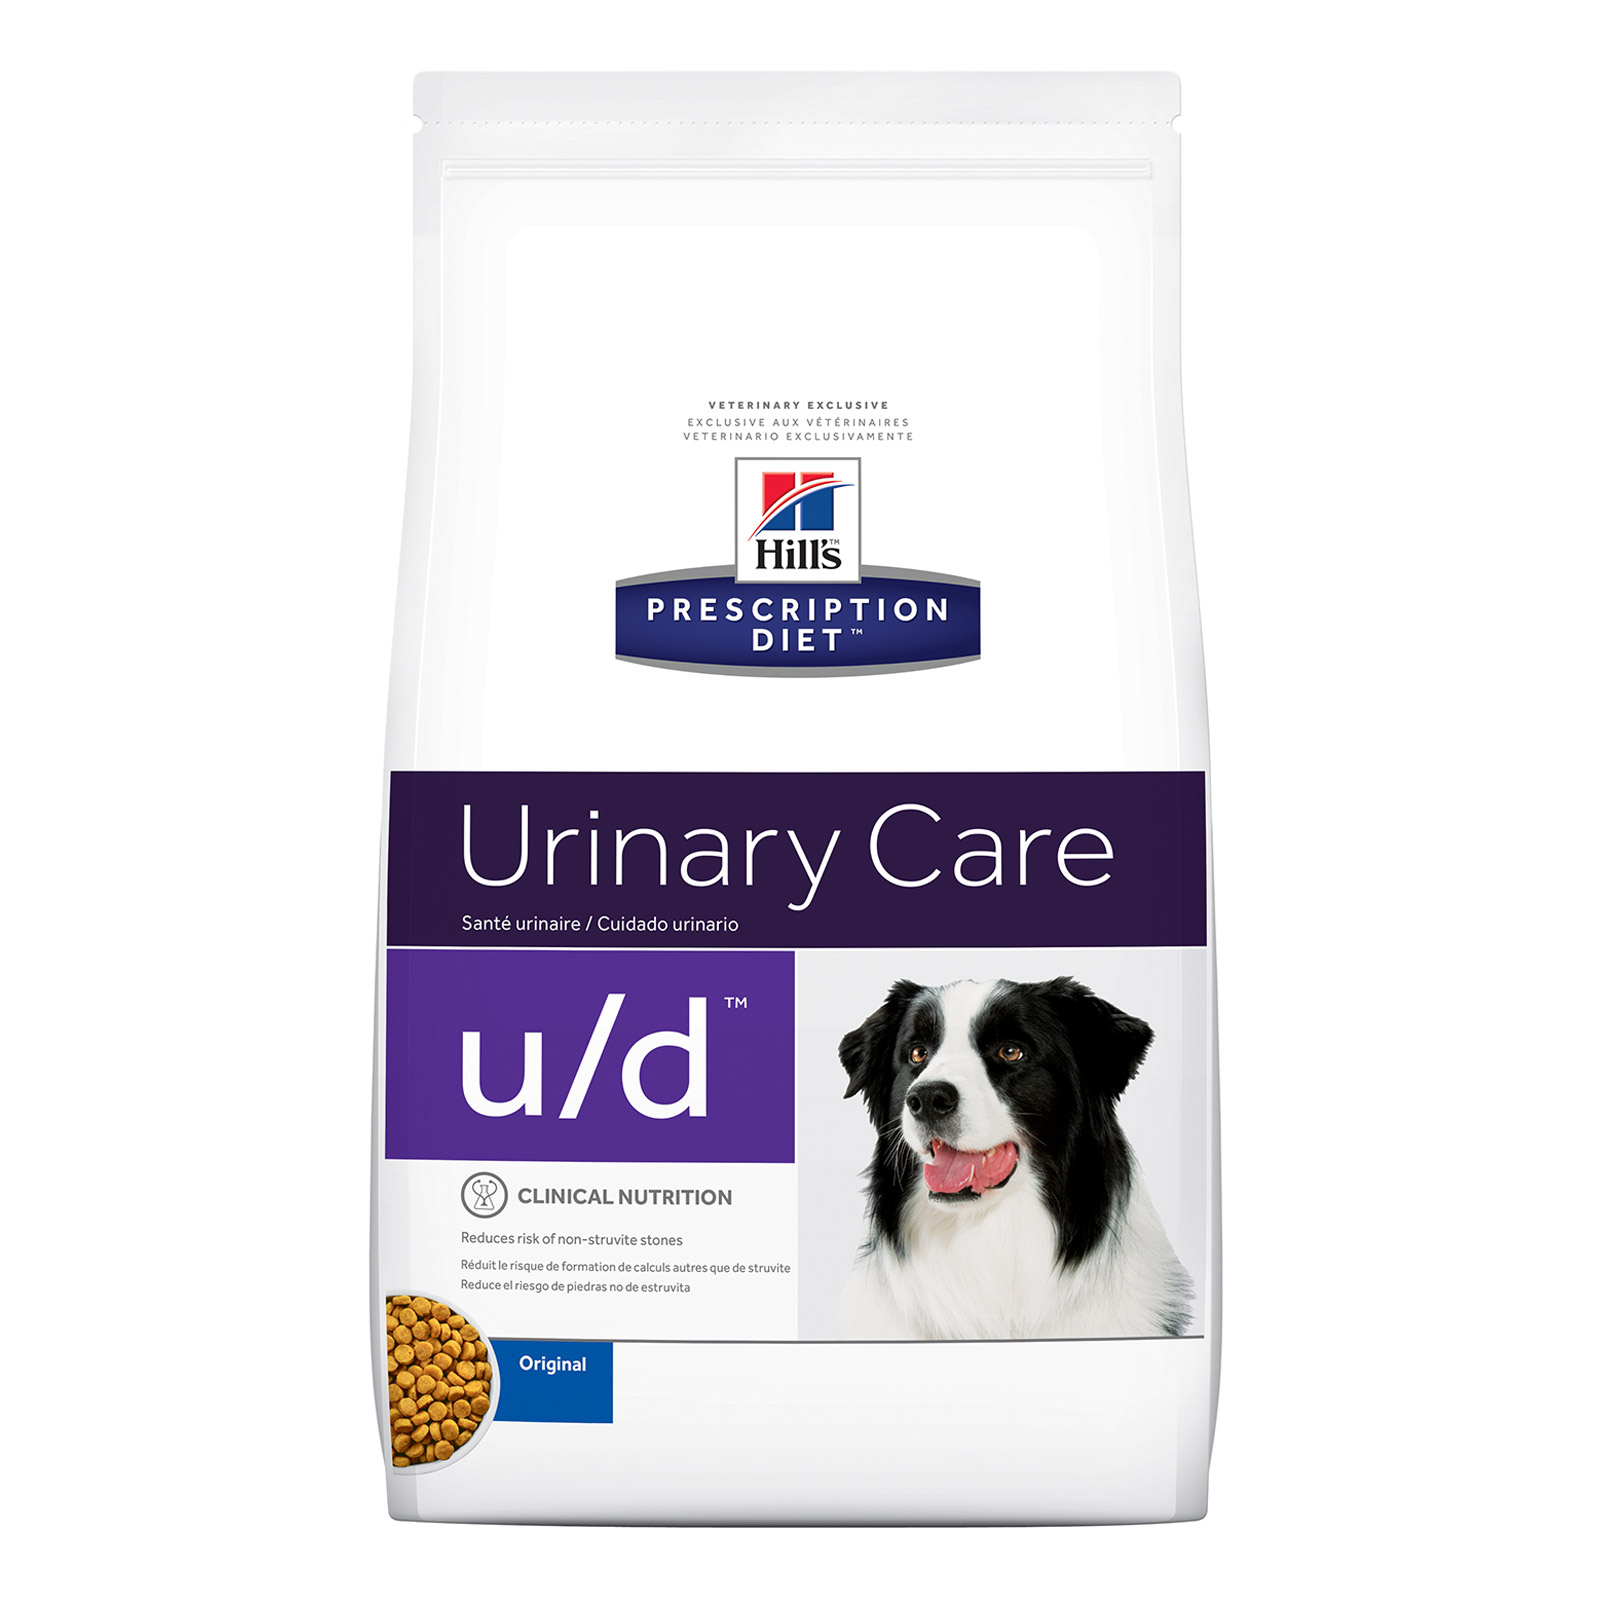 Hill's Prescription Diet u/d Urinary Care Dry Dog Food